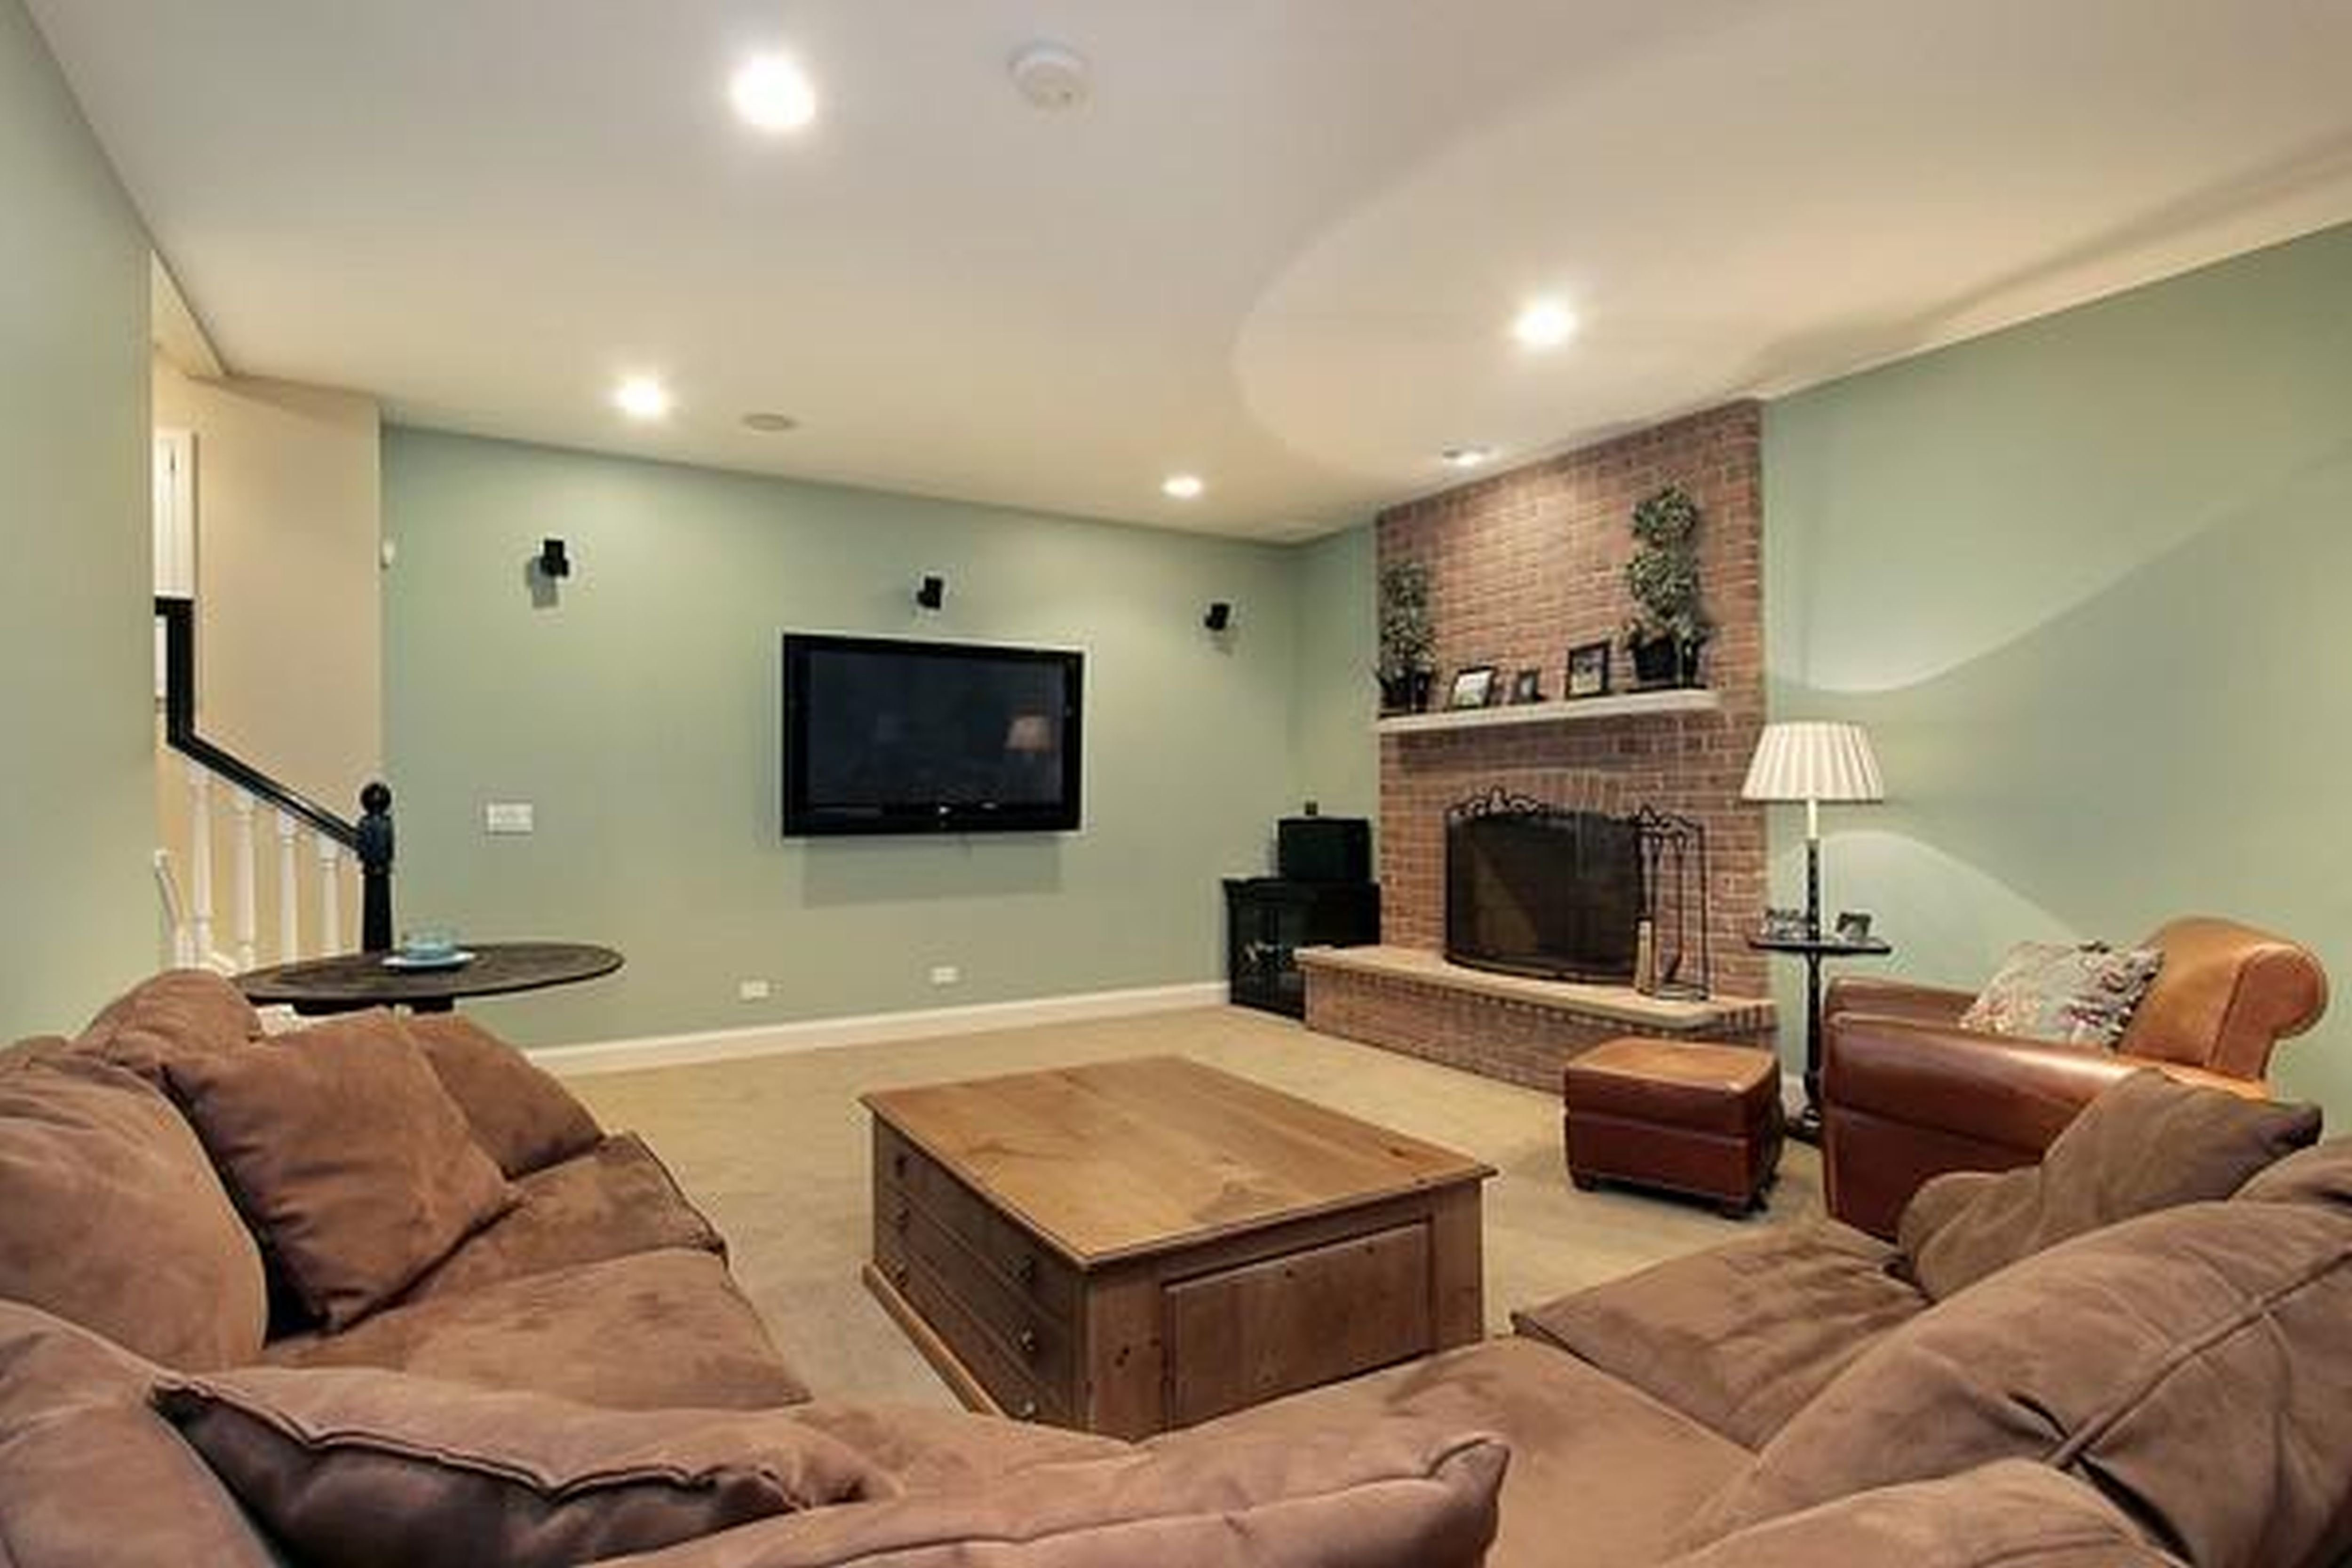 10 Nice Paint Color Ideas For Family Room basement family room paint colors new home design what is ideal 2020